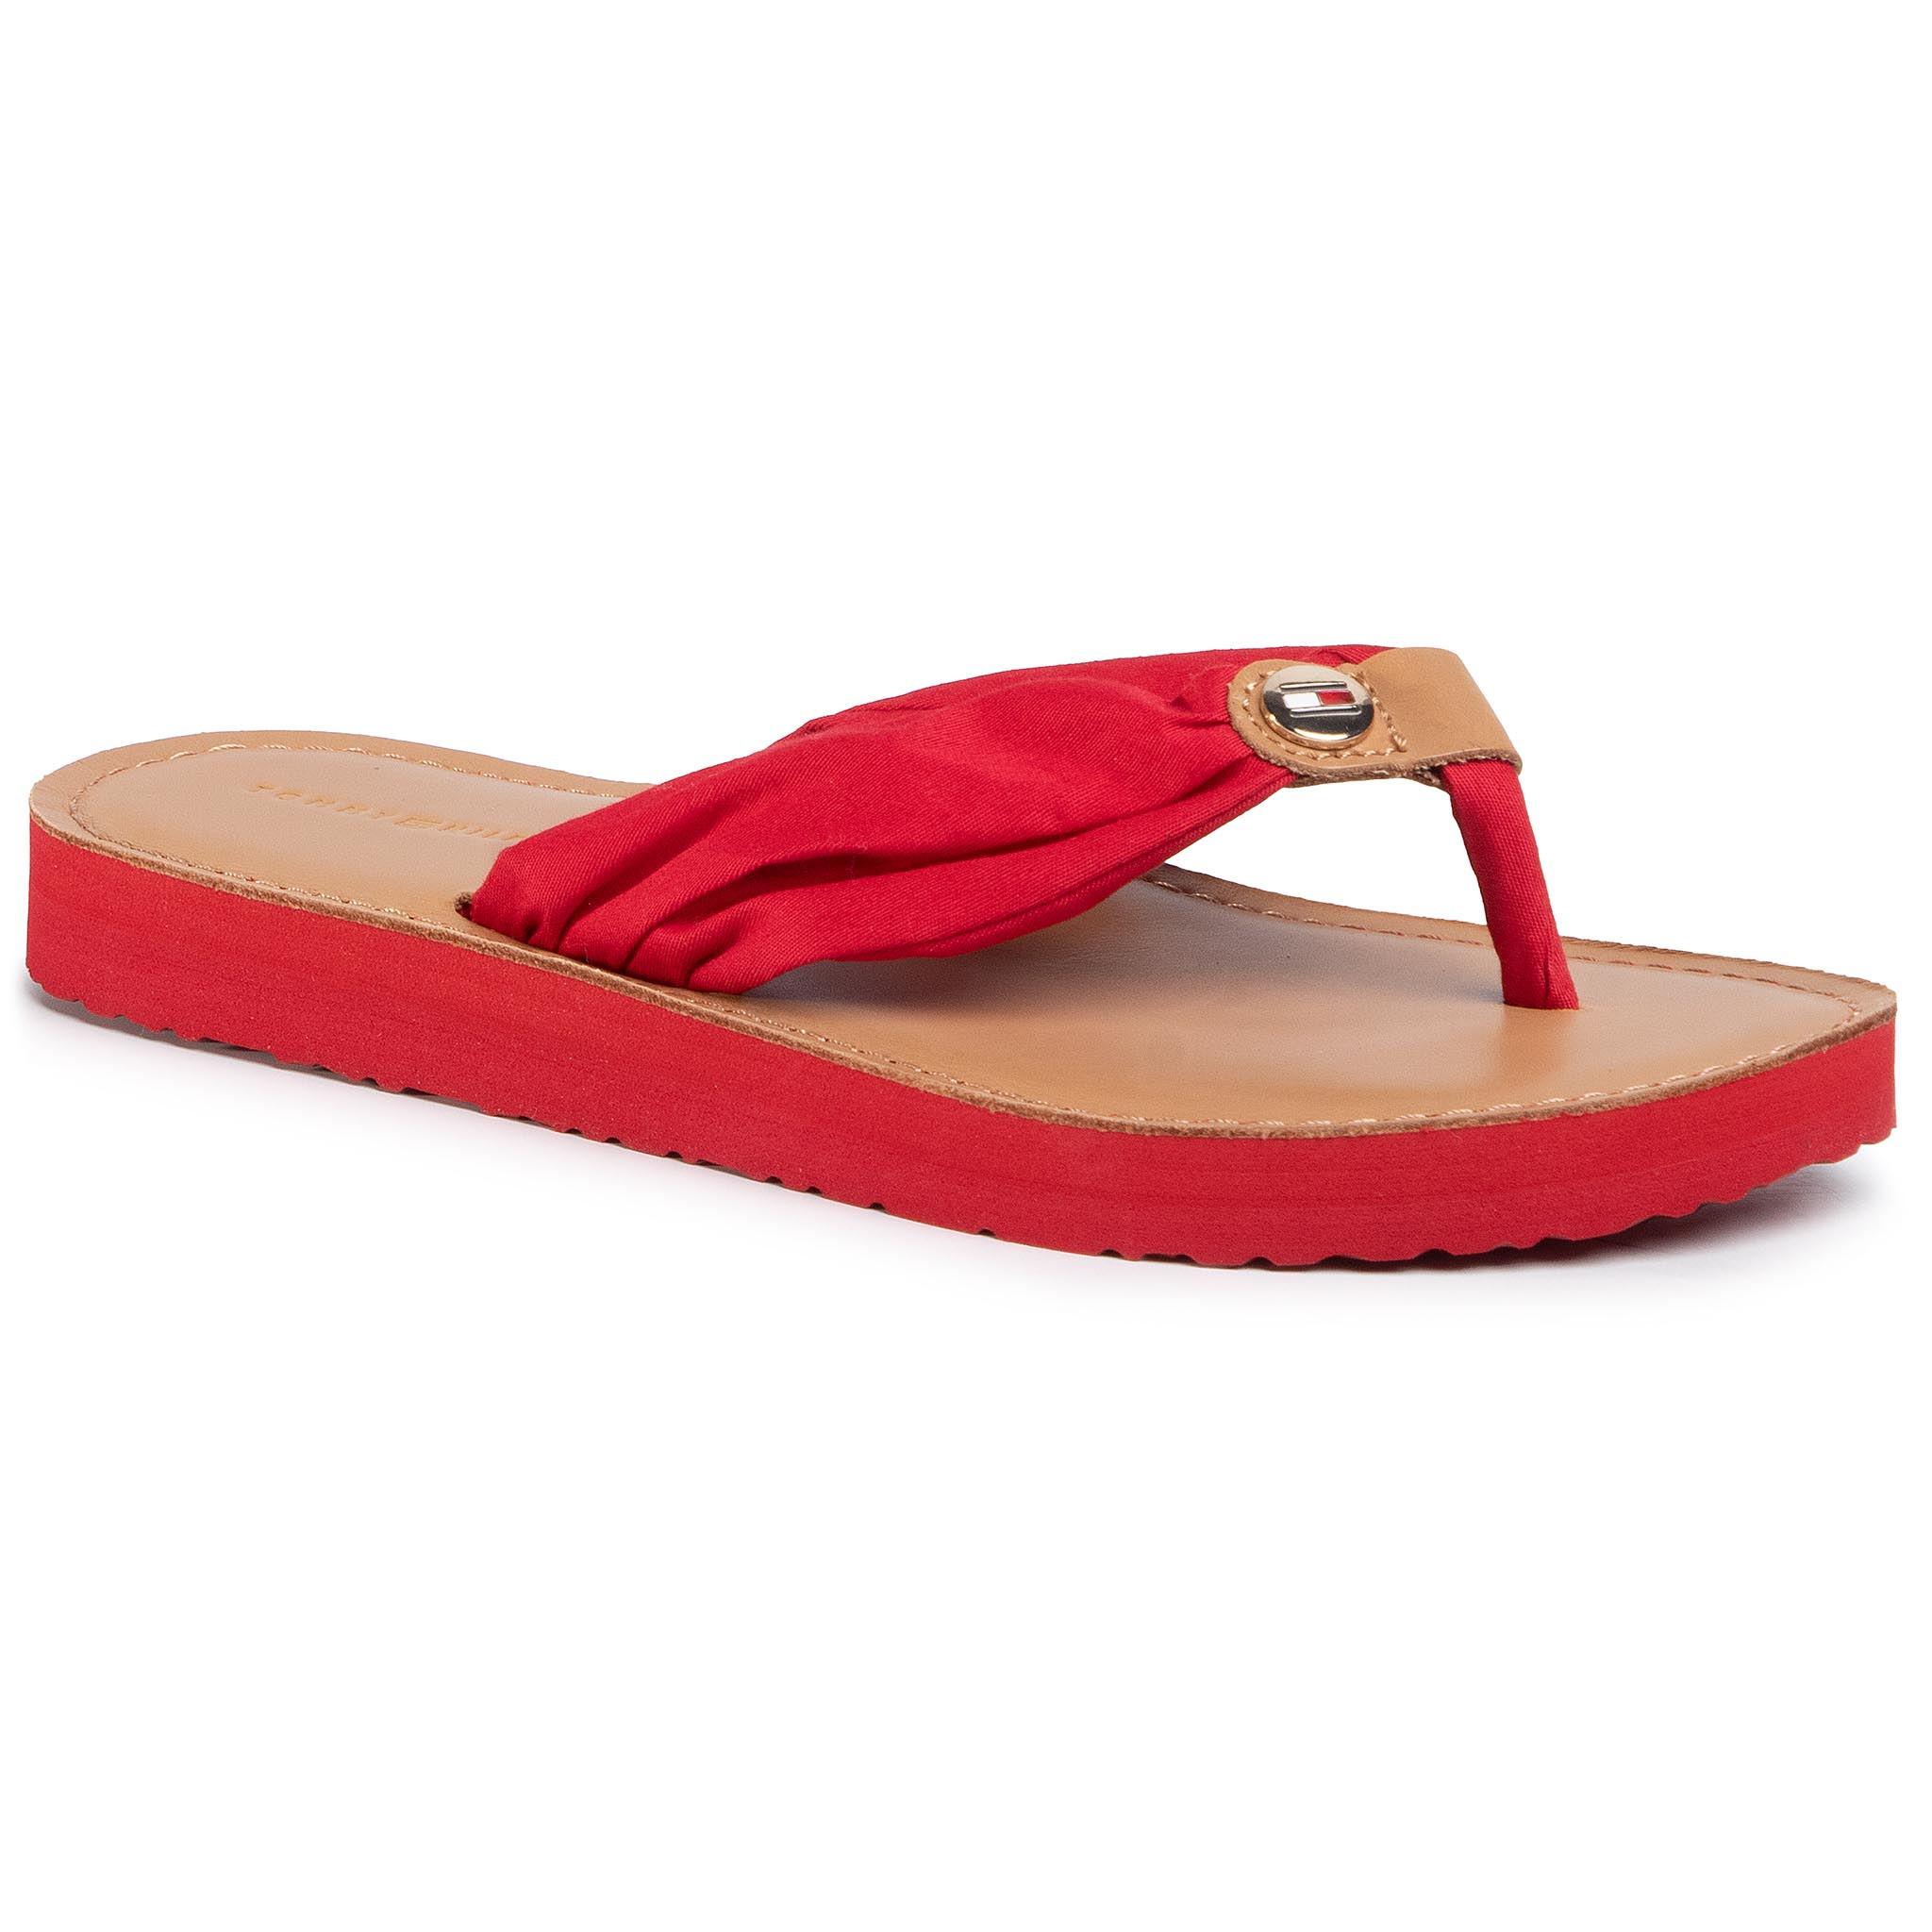 Flip flop TOMMY HILFIGER - Leather Footbed Beach Sandal FW0FW00475 Primary Red XLG